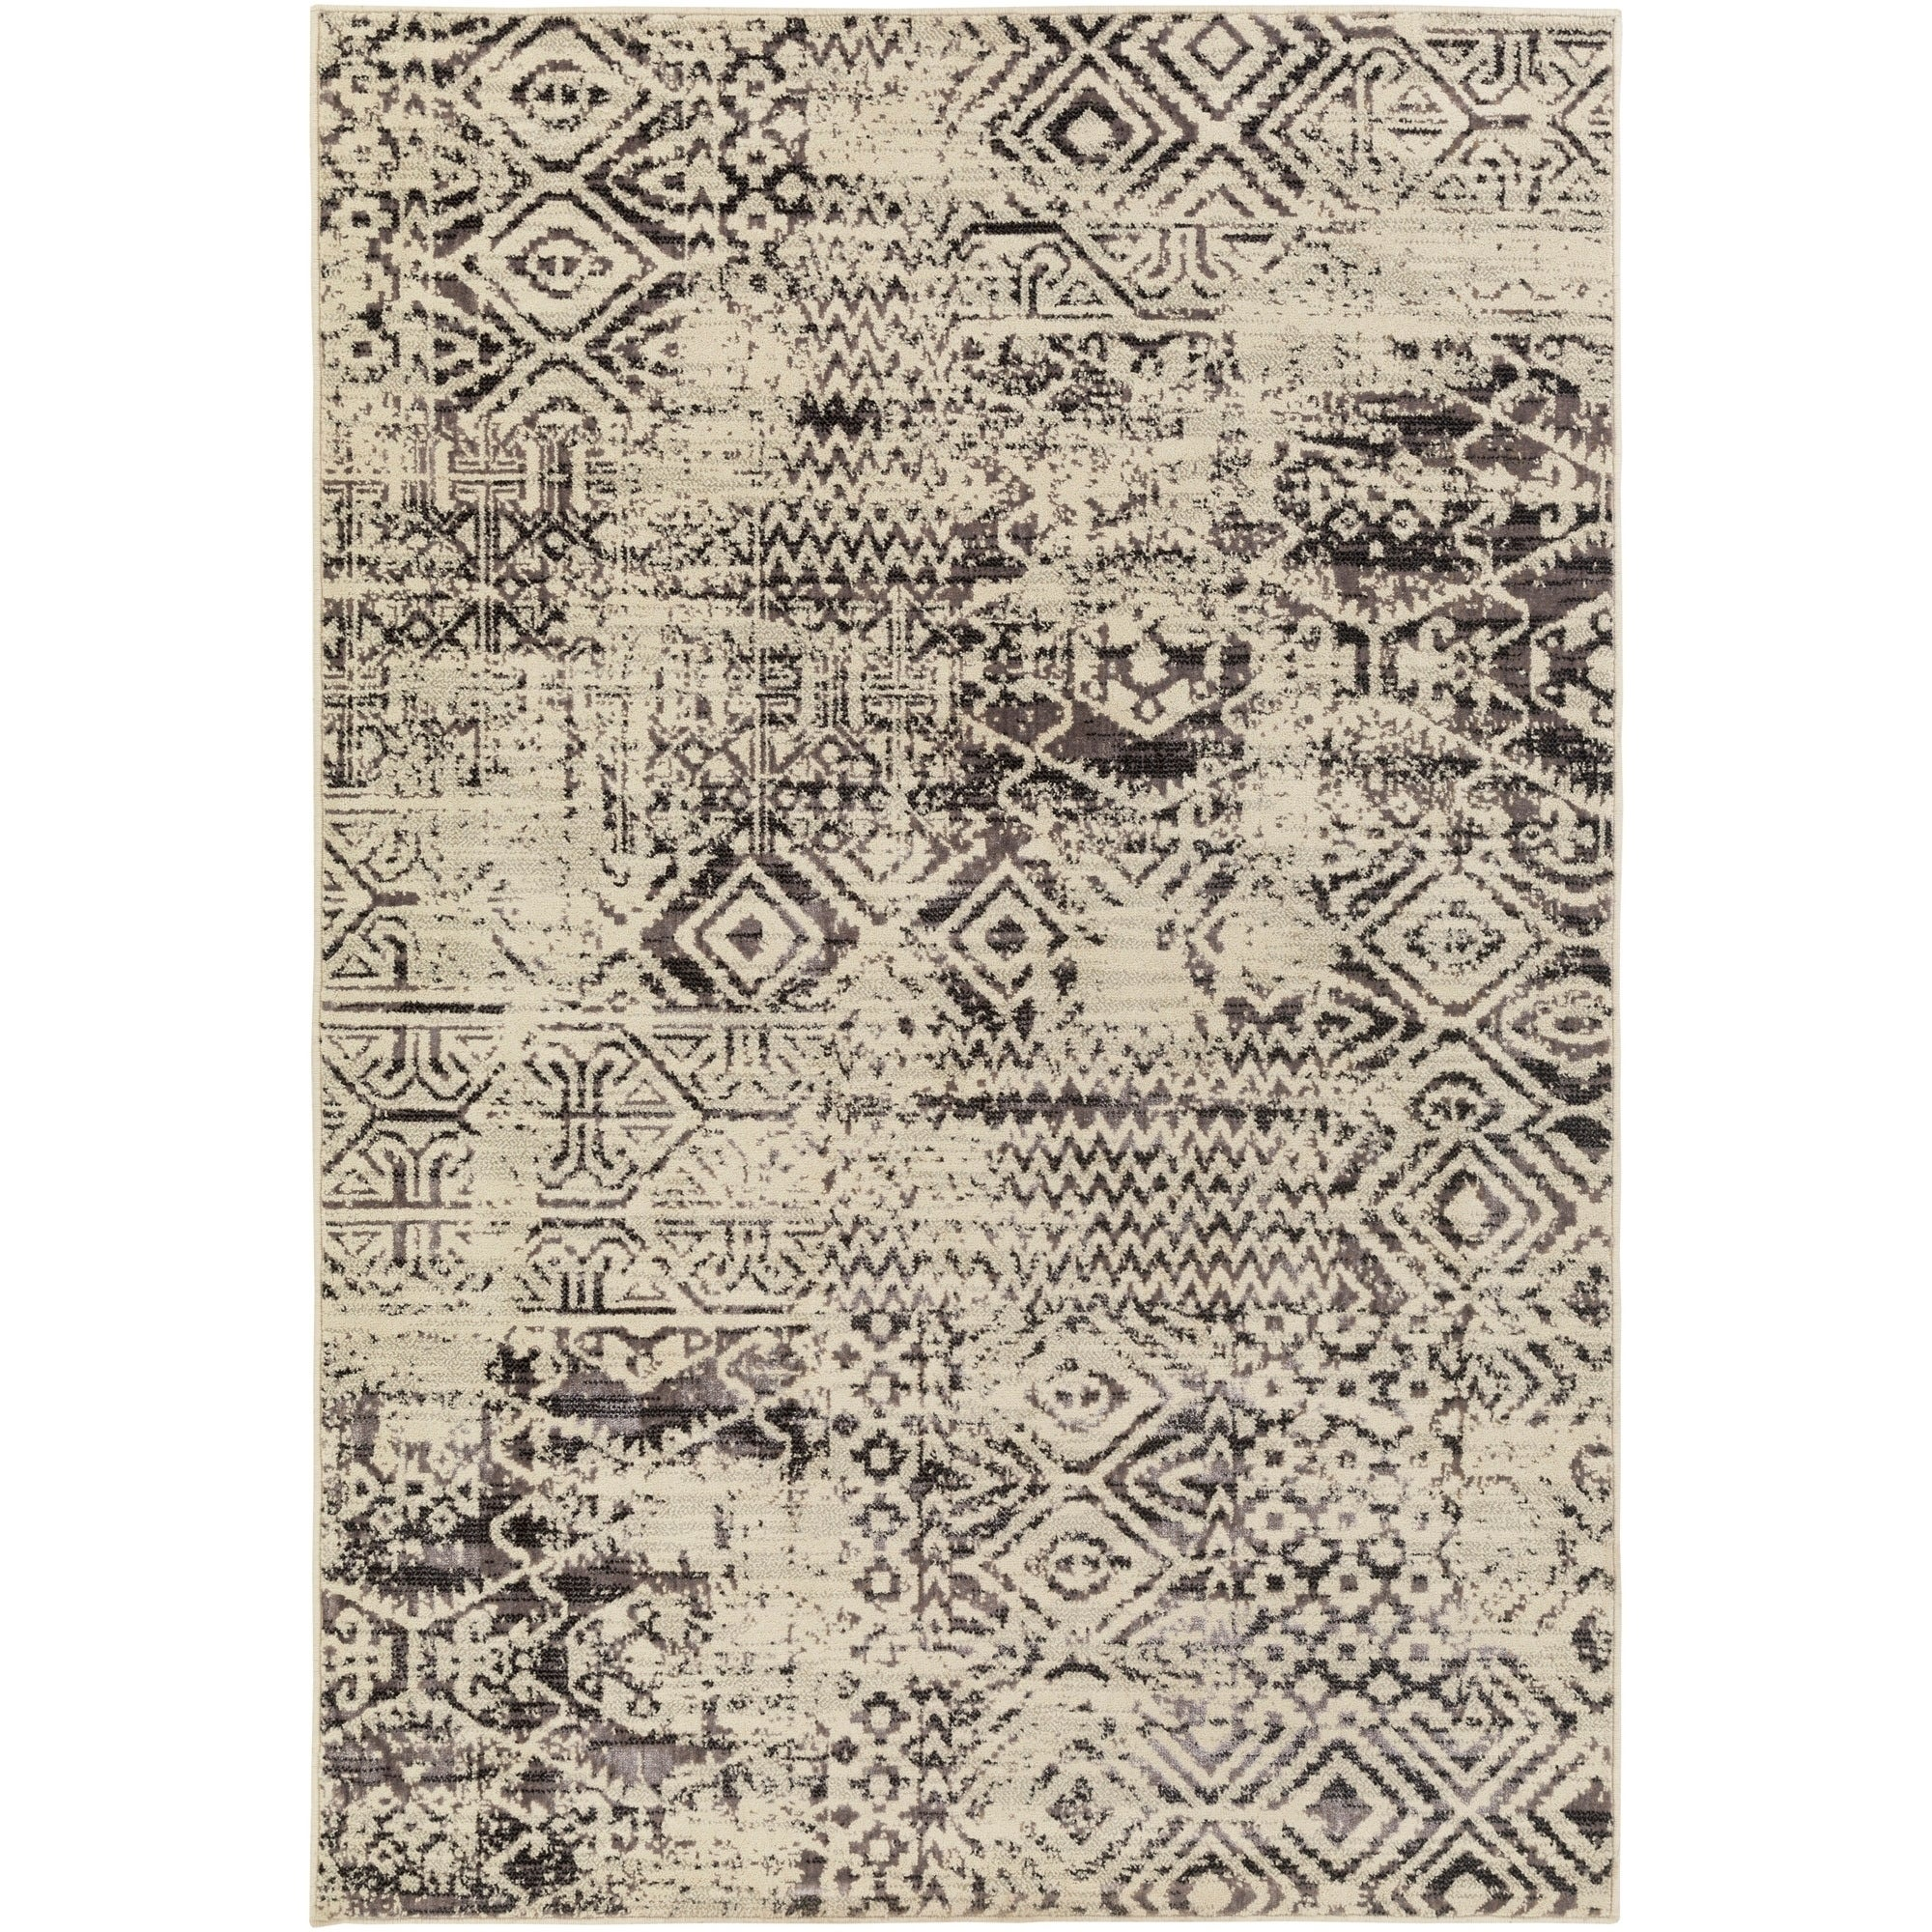 SURYA Machine Made Prospect Polyester/Wool Rug (5'3 x 7'3...